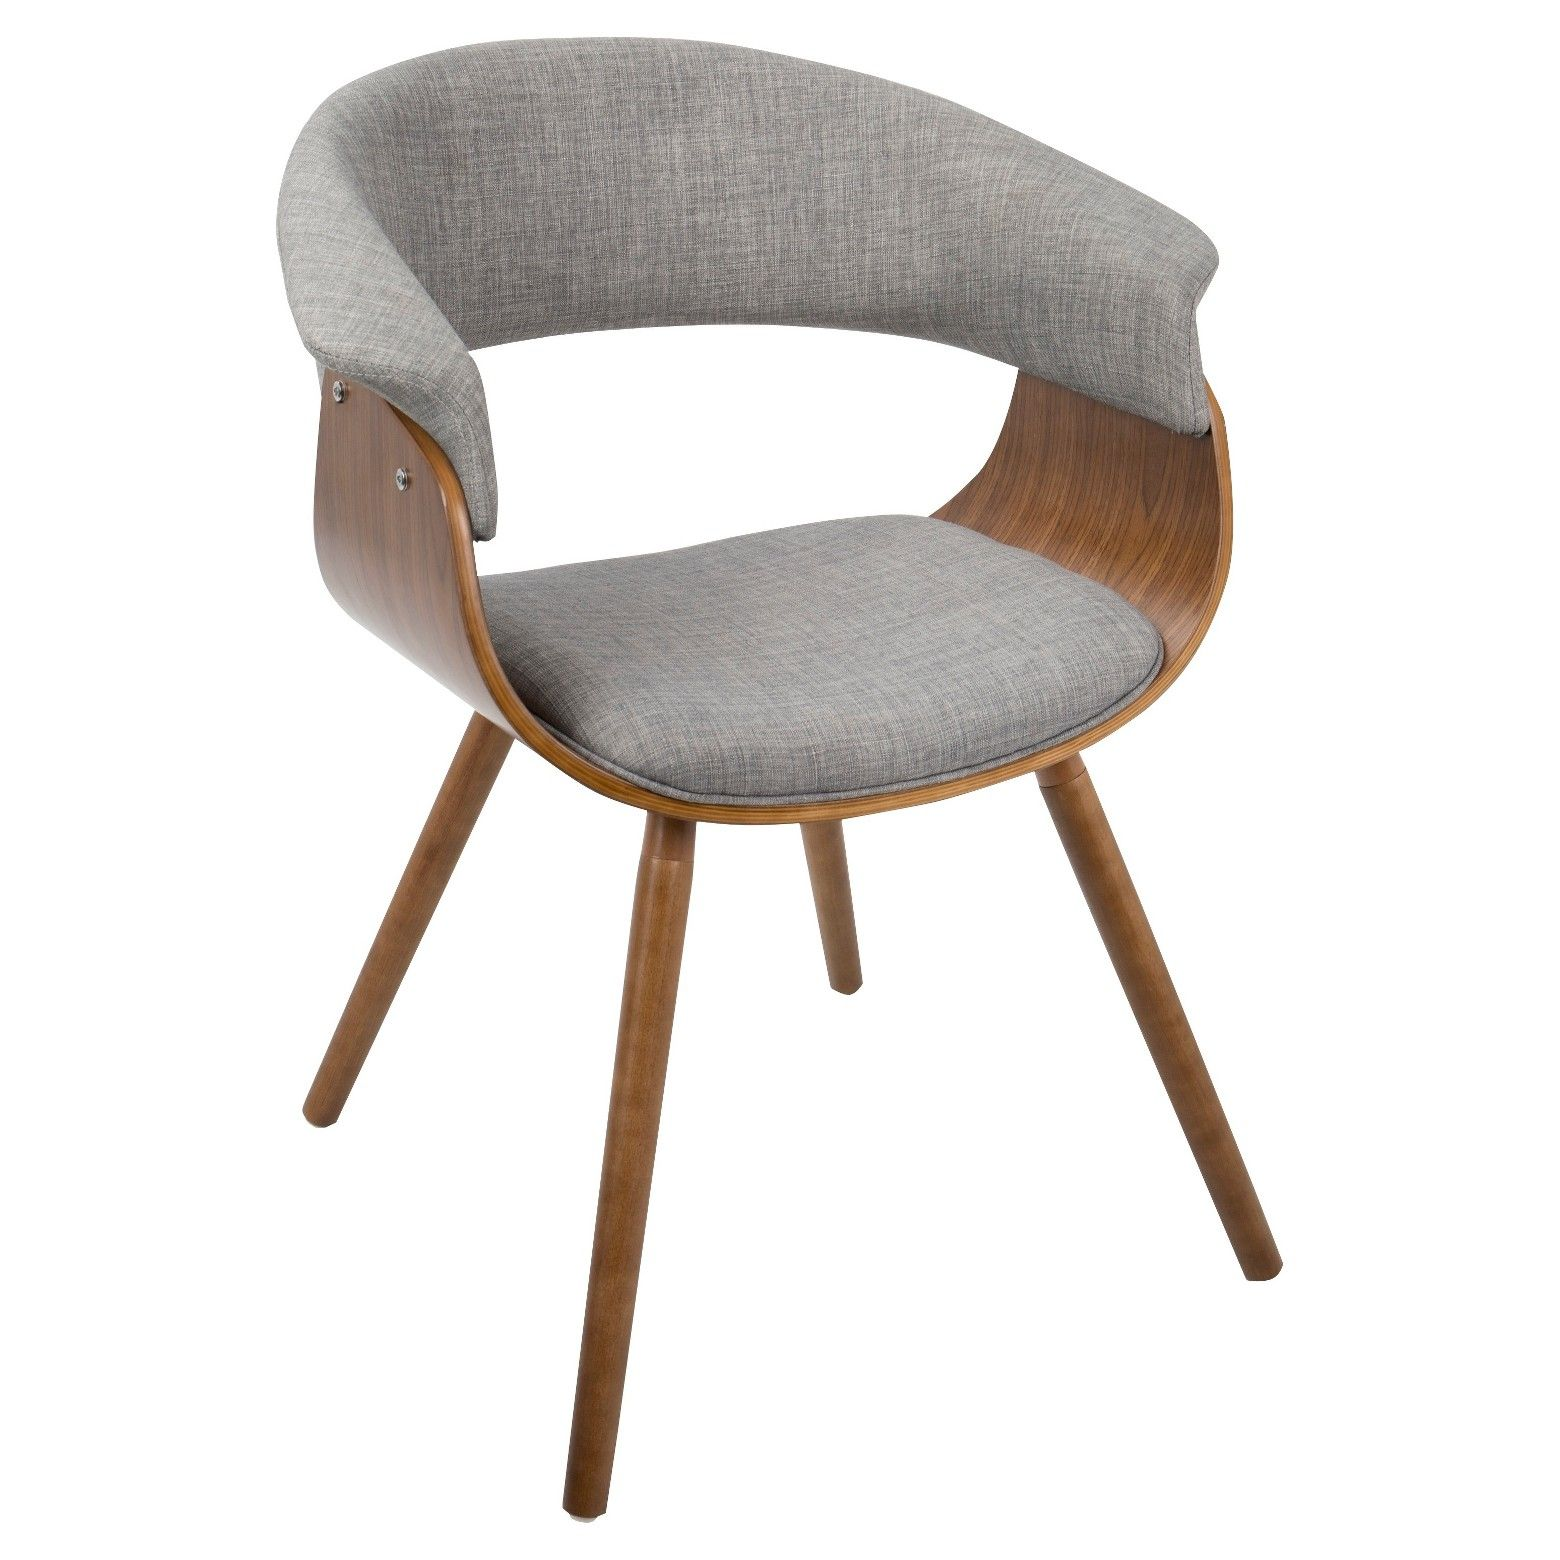 Bring A Retro Vibe To Your Space With The Mid Century Modern